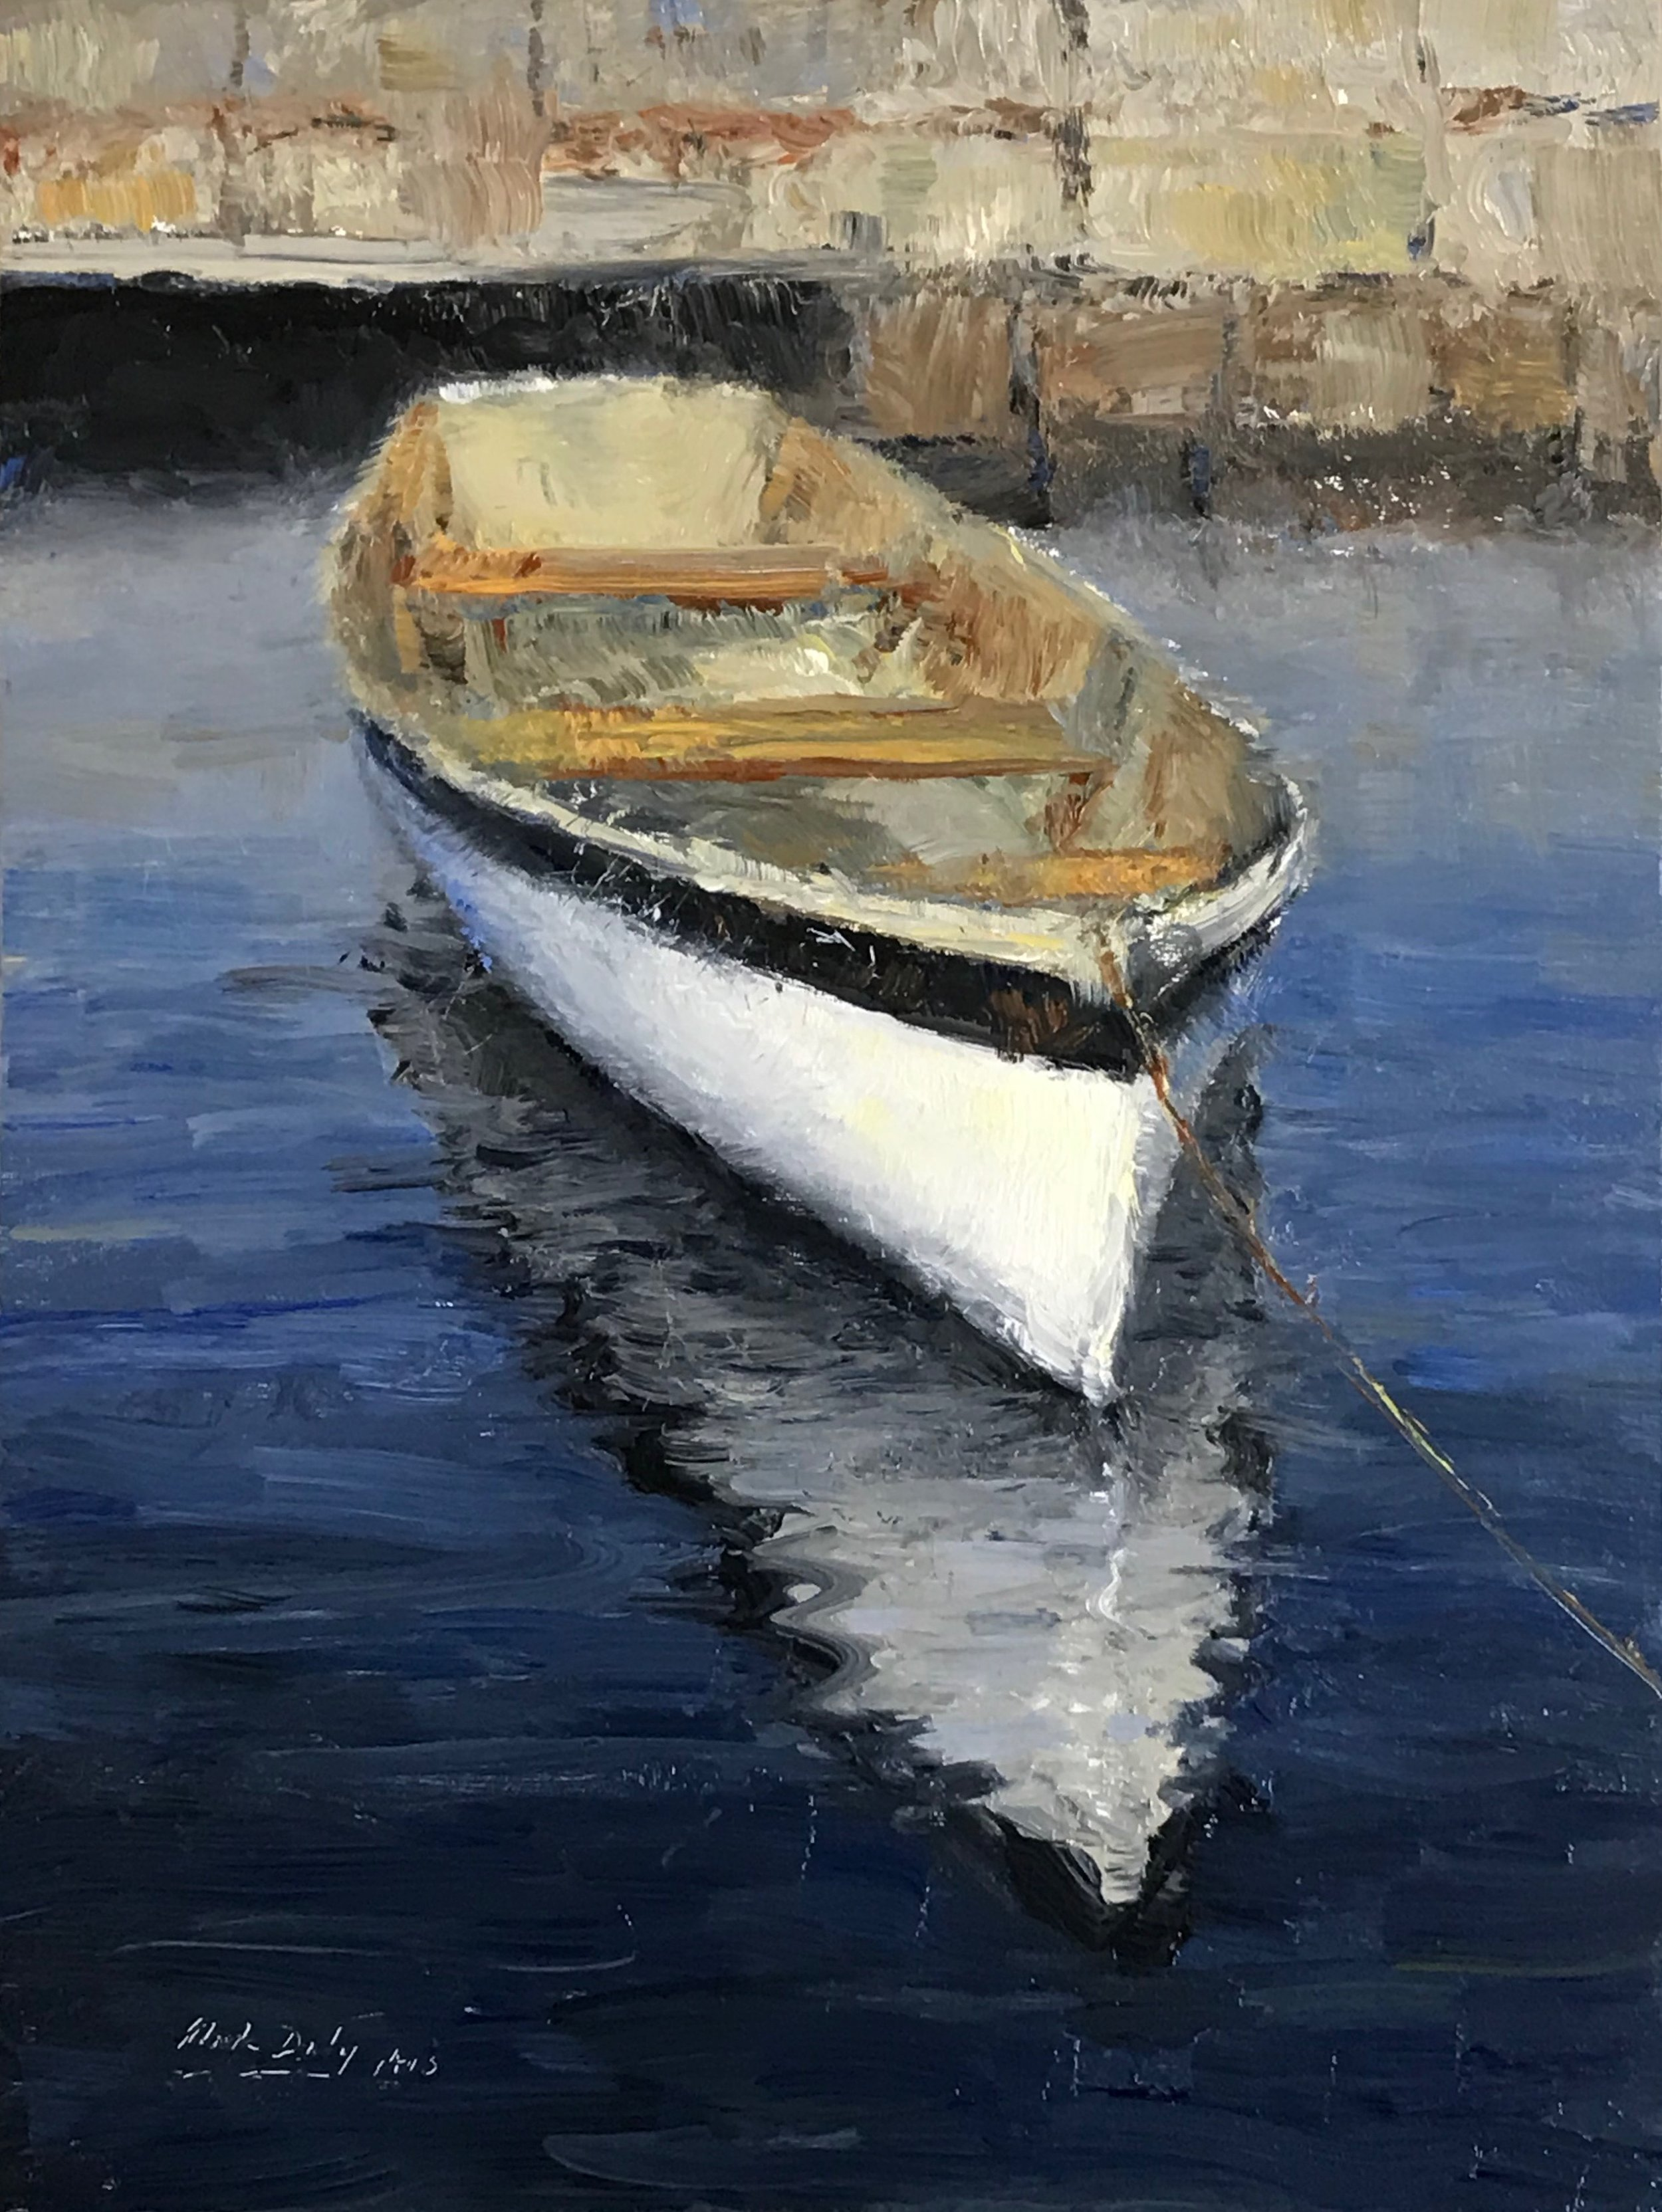 White Boat Reflections, Oil 12 x 9. Signed lower left by Mark Daly. Exhibited at OPA National Show.